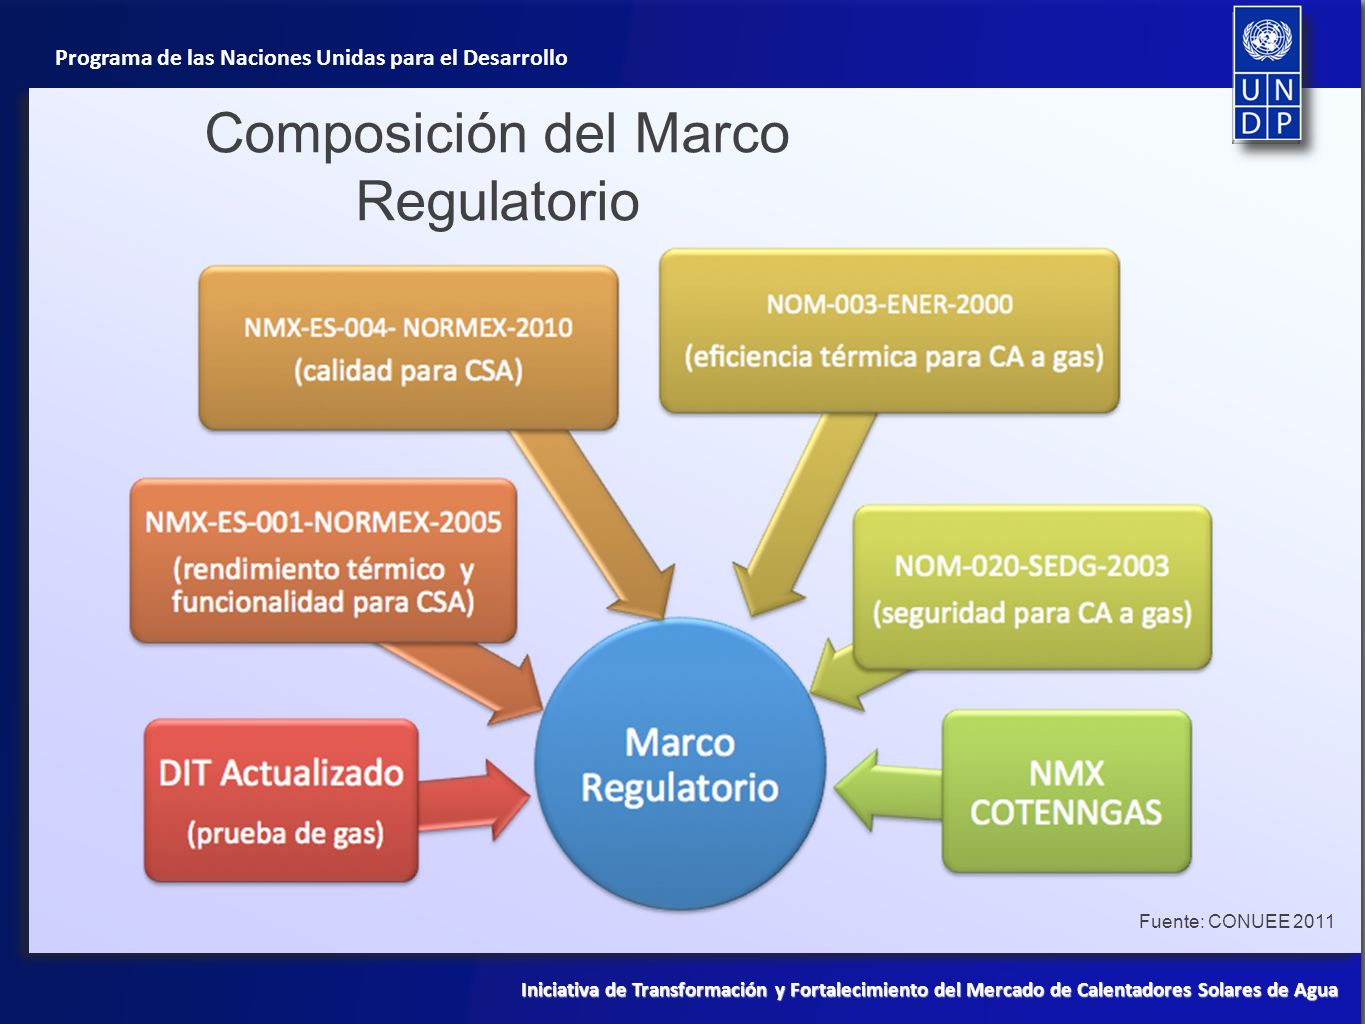 Composición del Marco Regulatorio